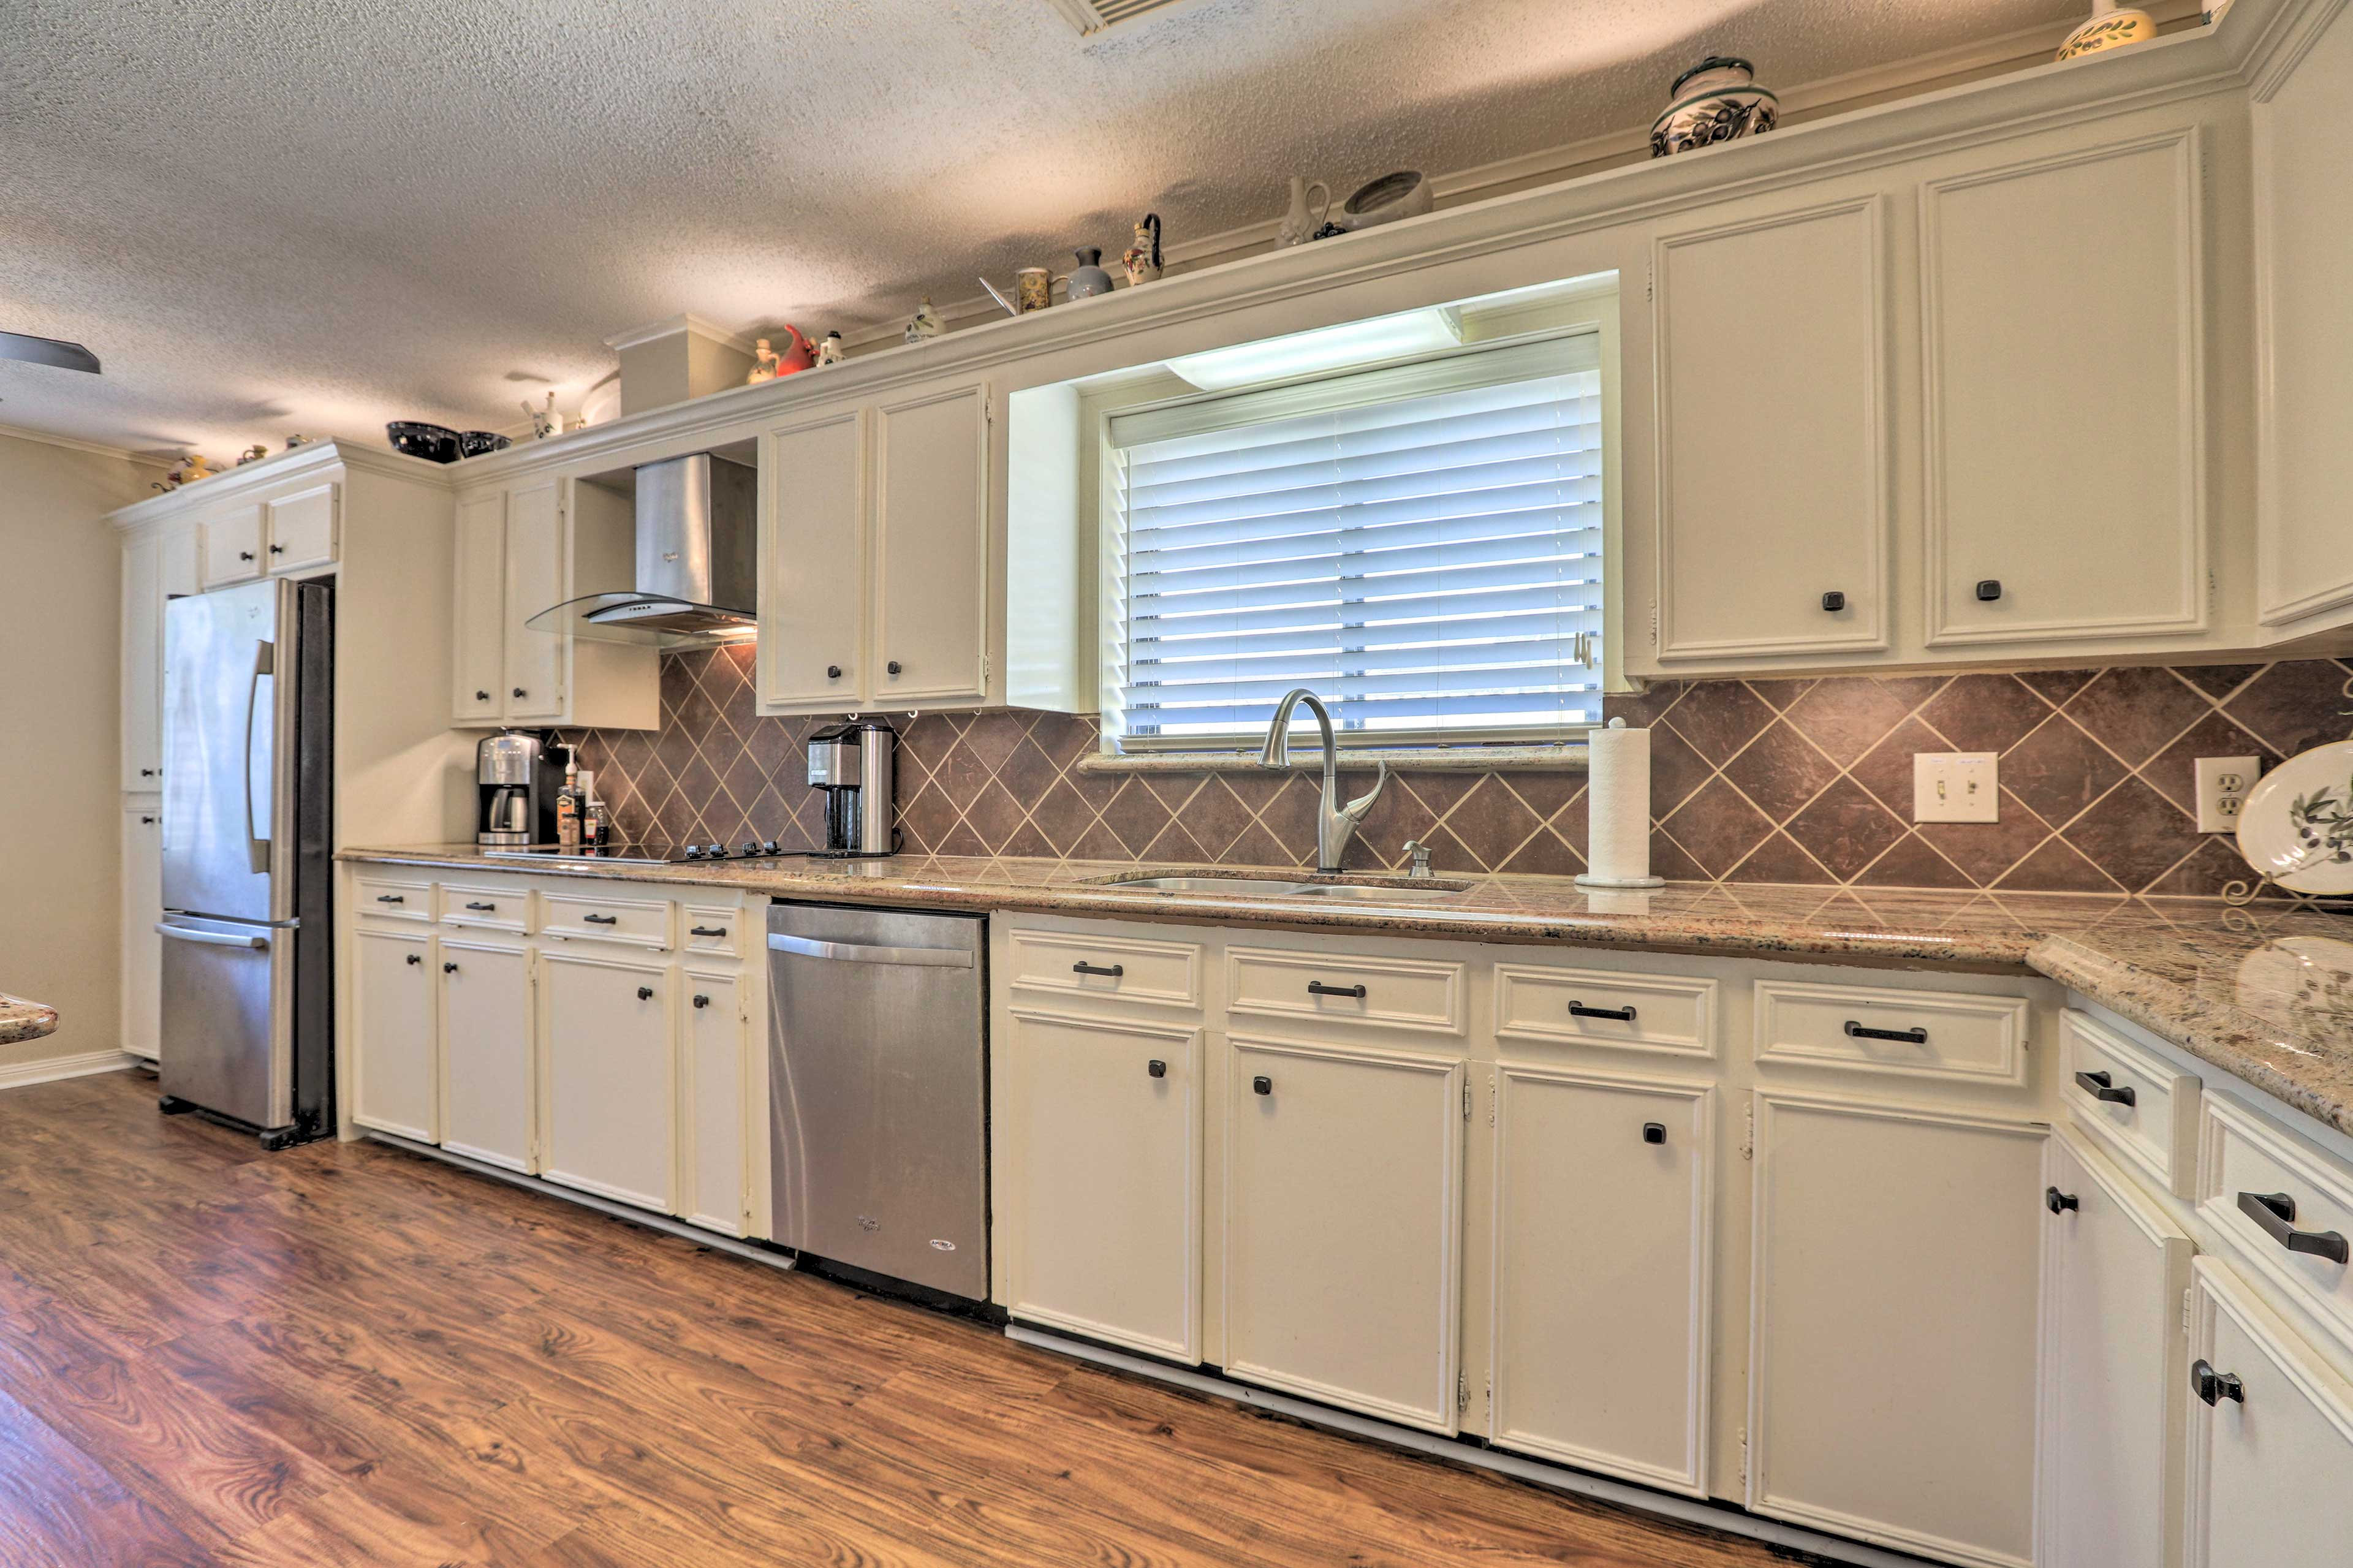 The fully equipped kitchen makes it easy to prepare home-cooked meals.